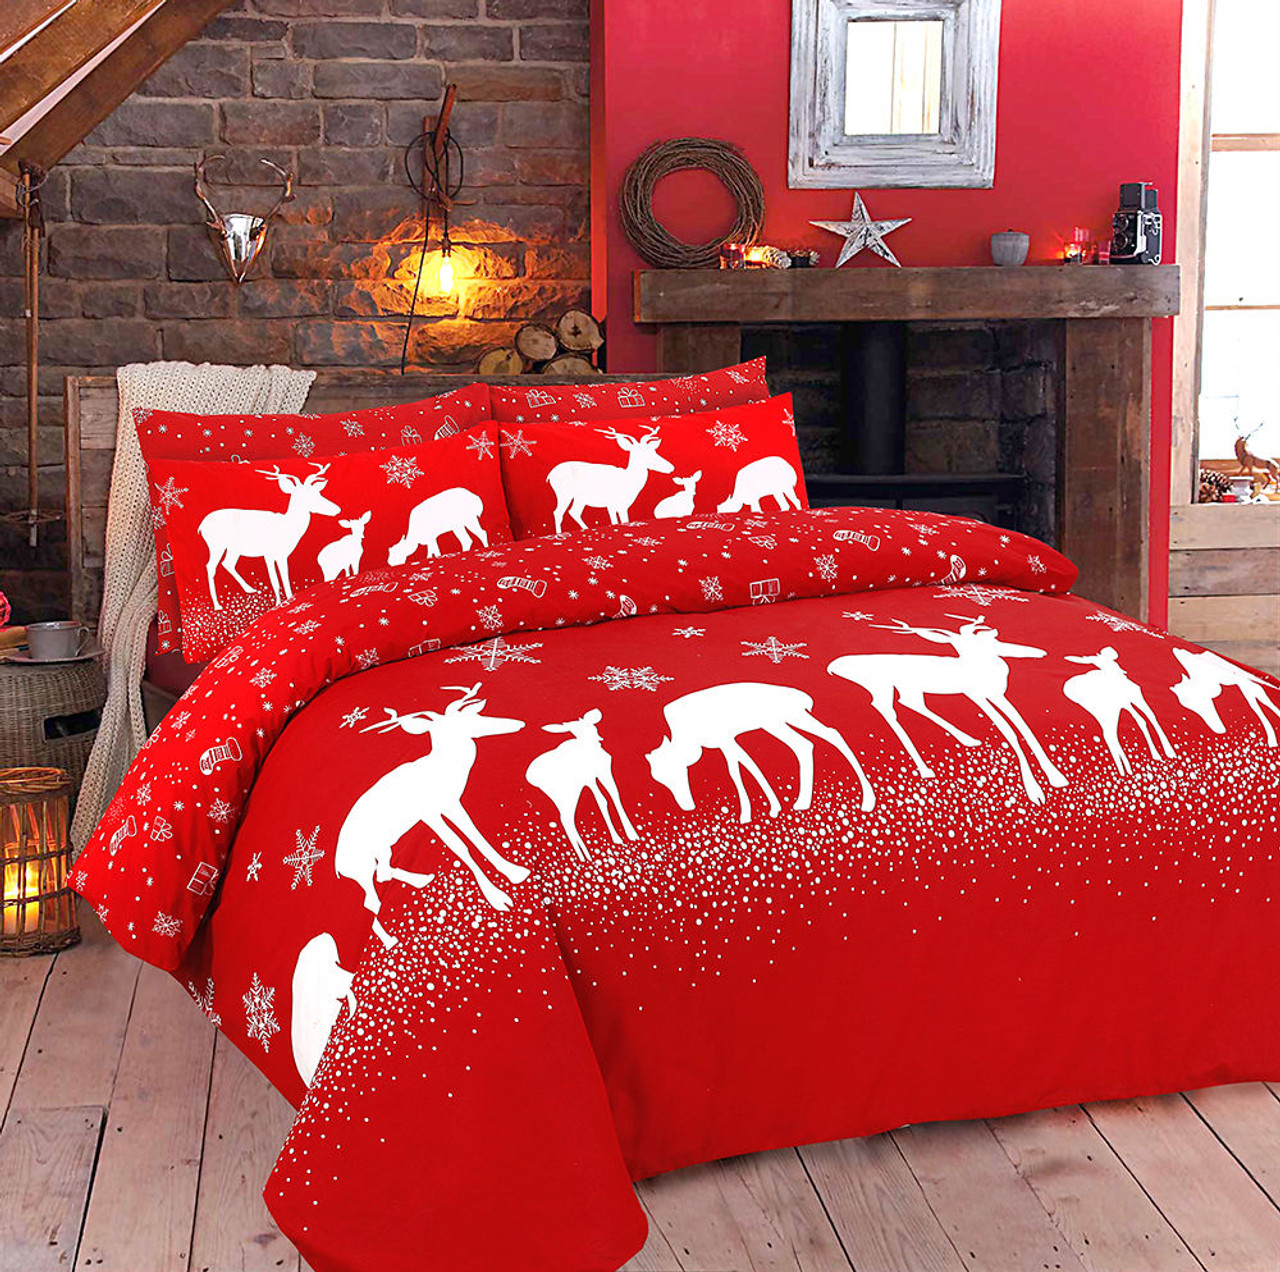 cover deer set products covers festive duvet white bed bedding christmas